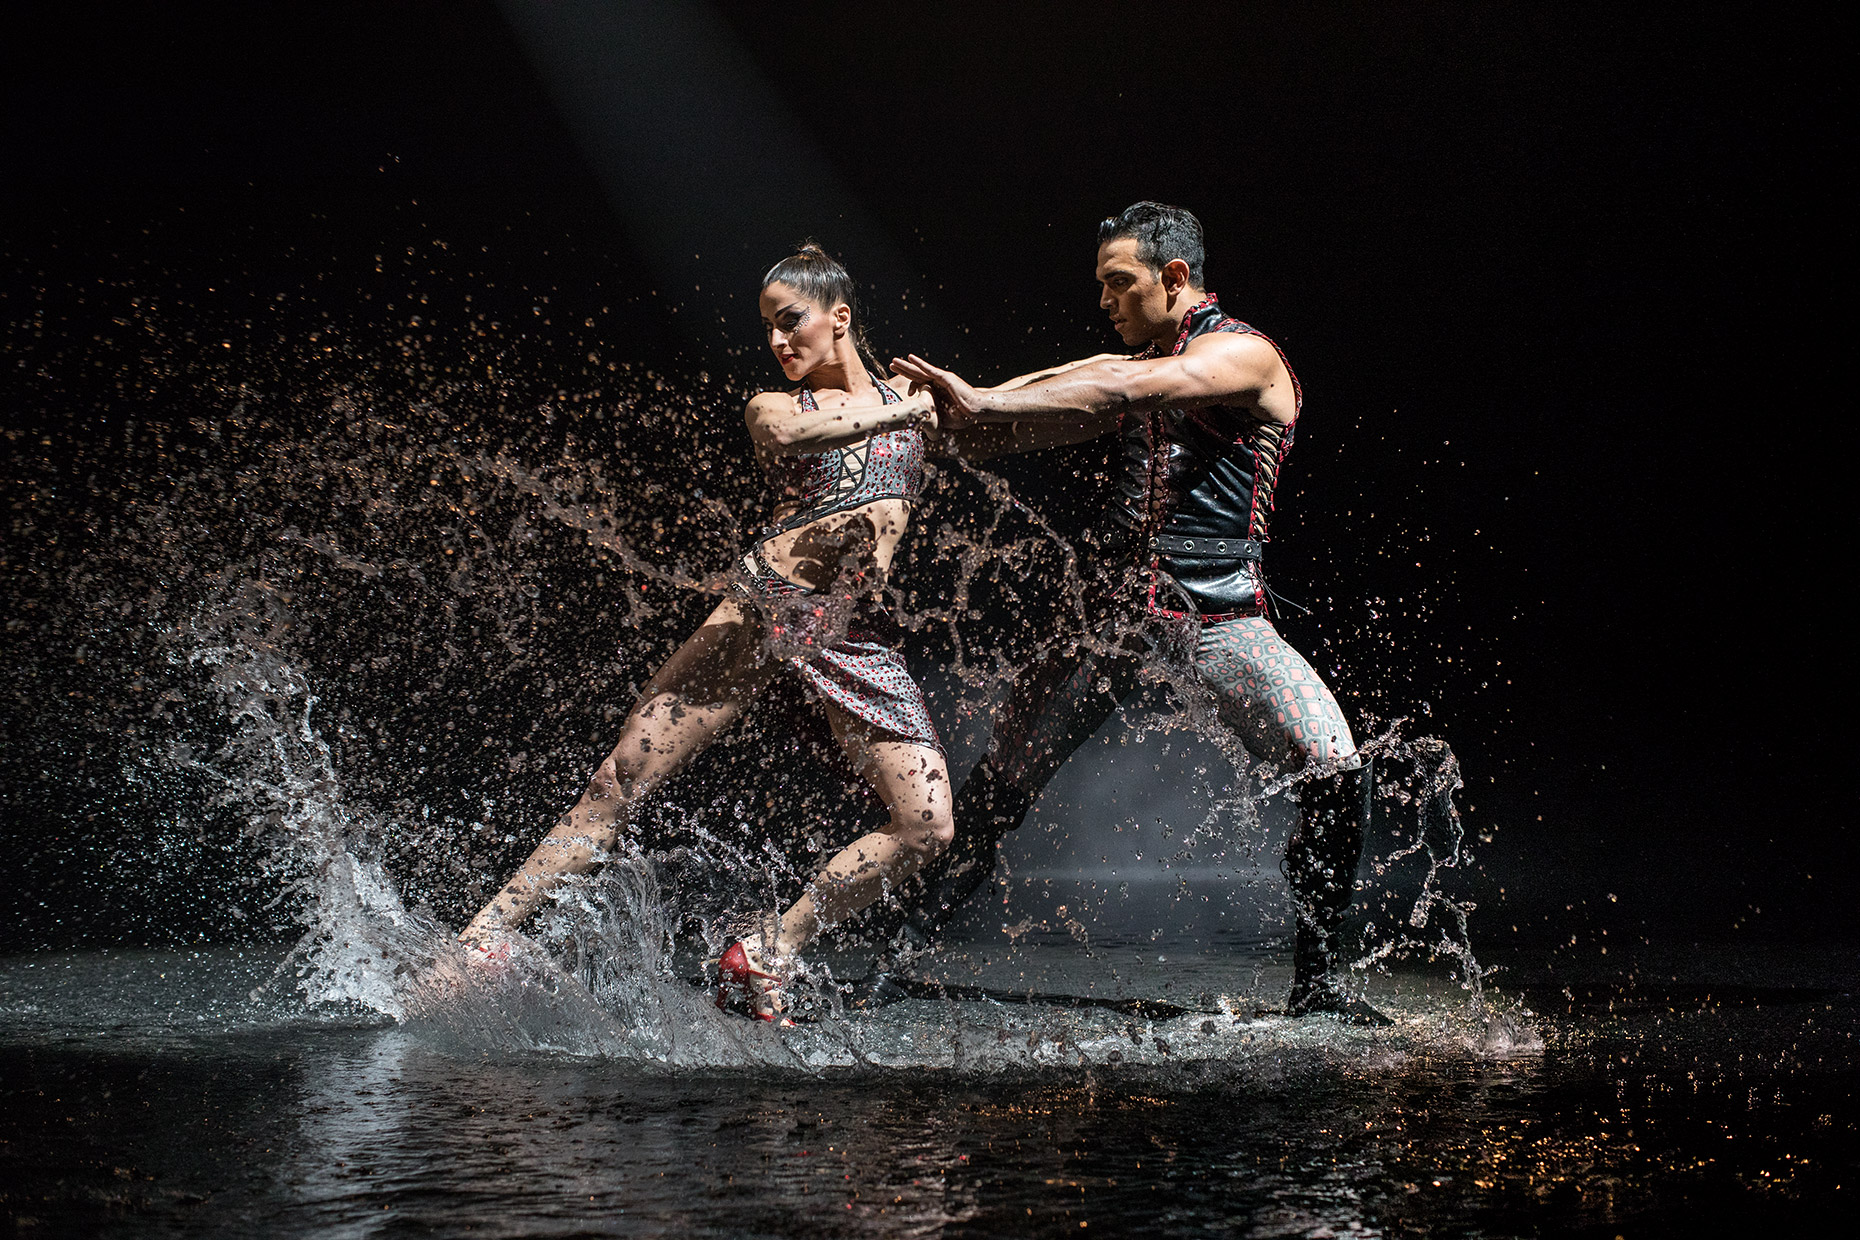 Two ball room dancers in a tango splashing water. Advertising photo for Le RÊVE the show at Wynn Las Vegas.